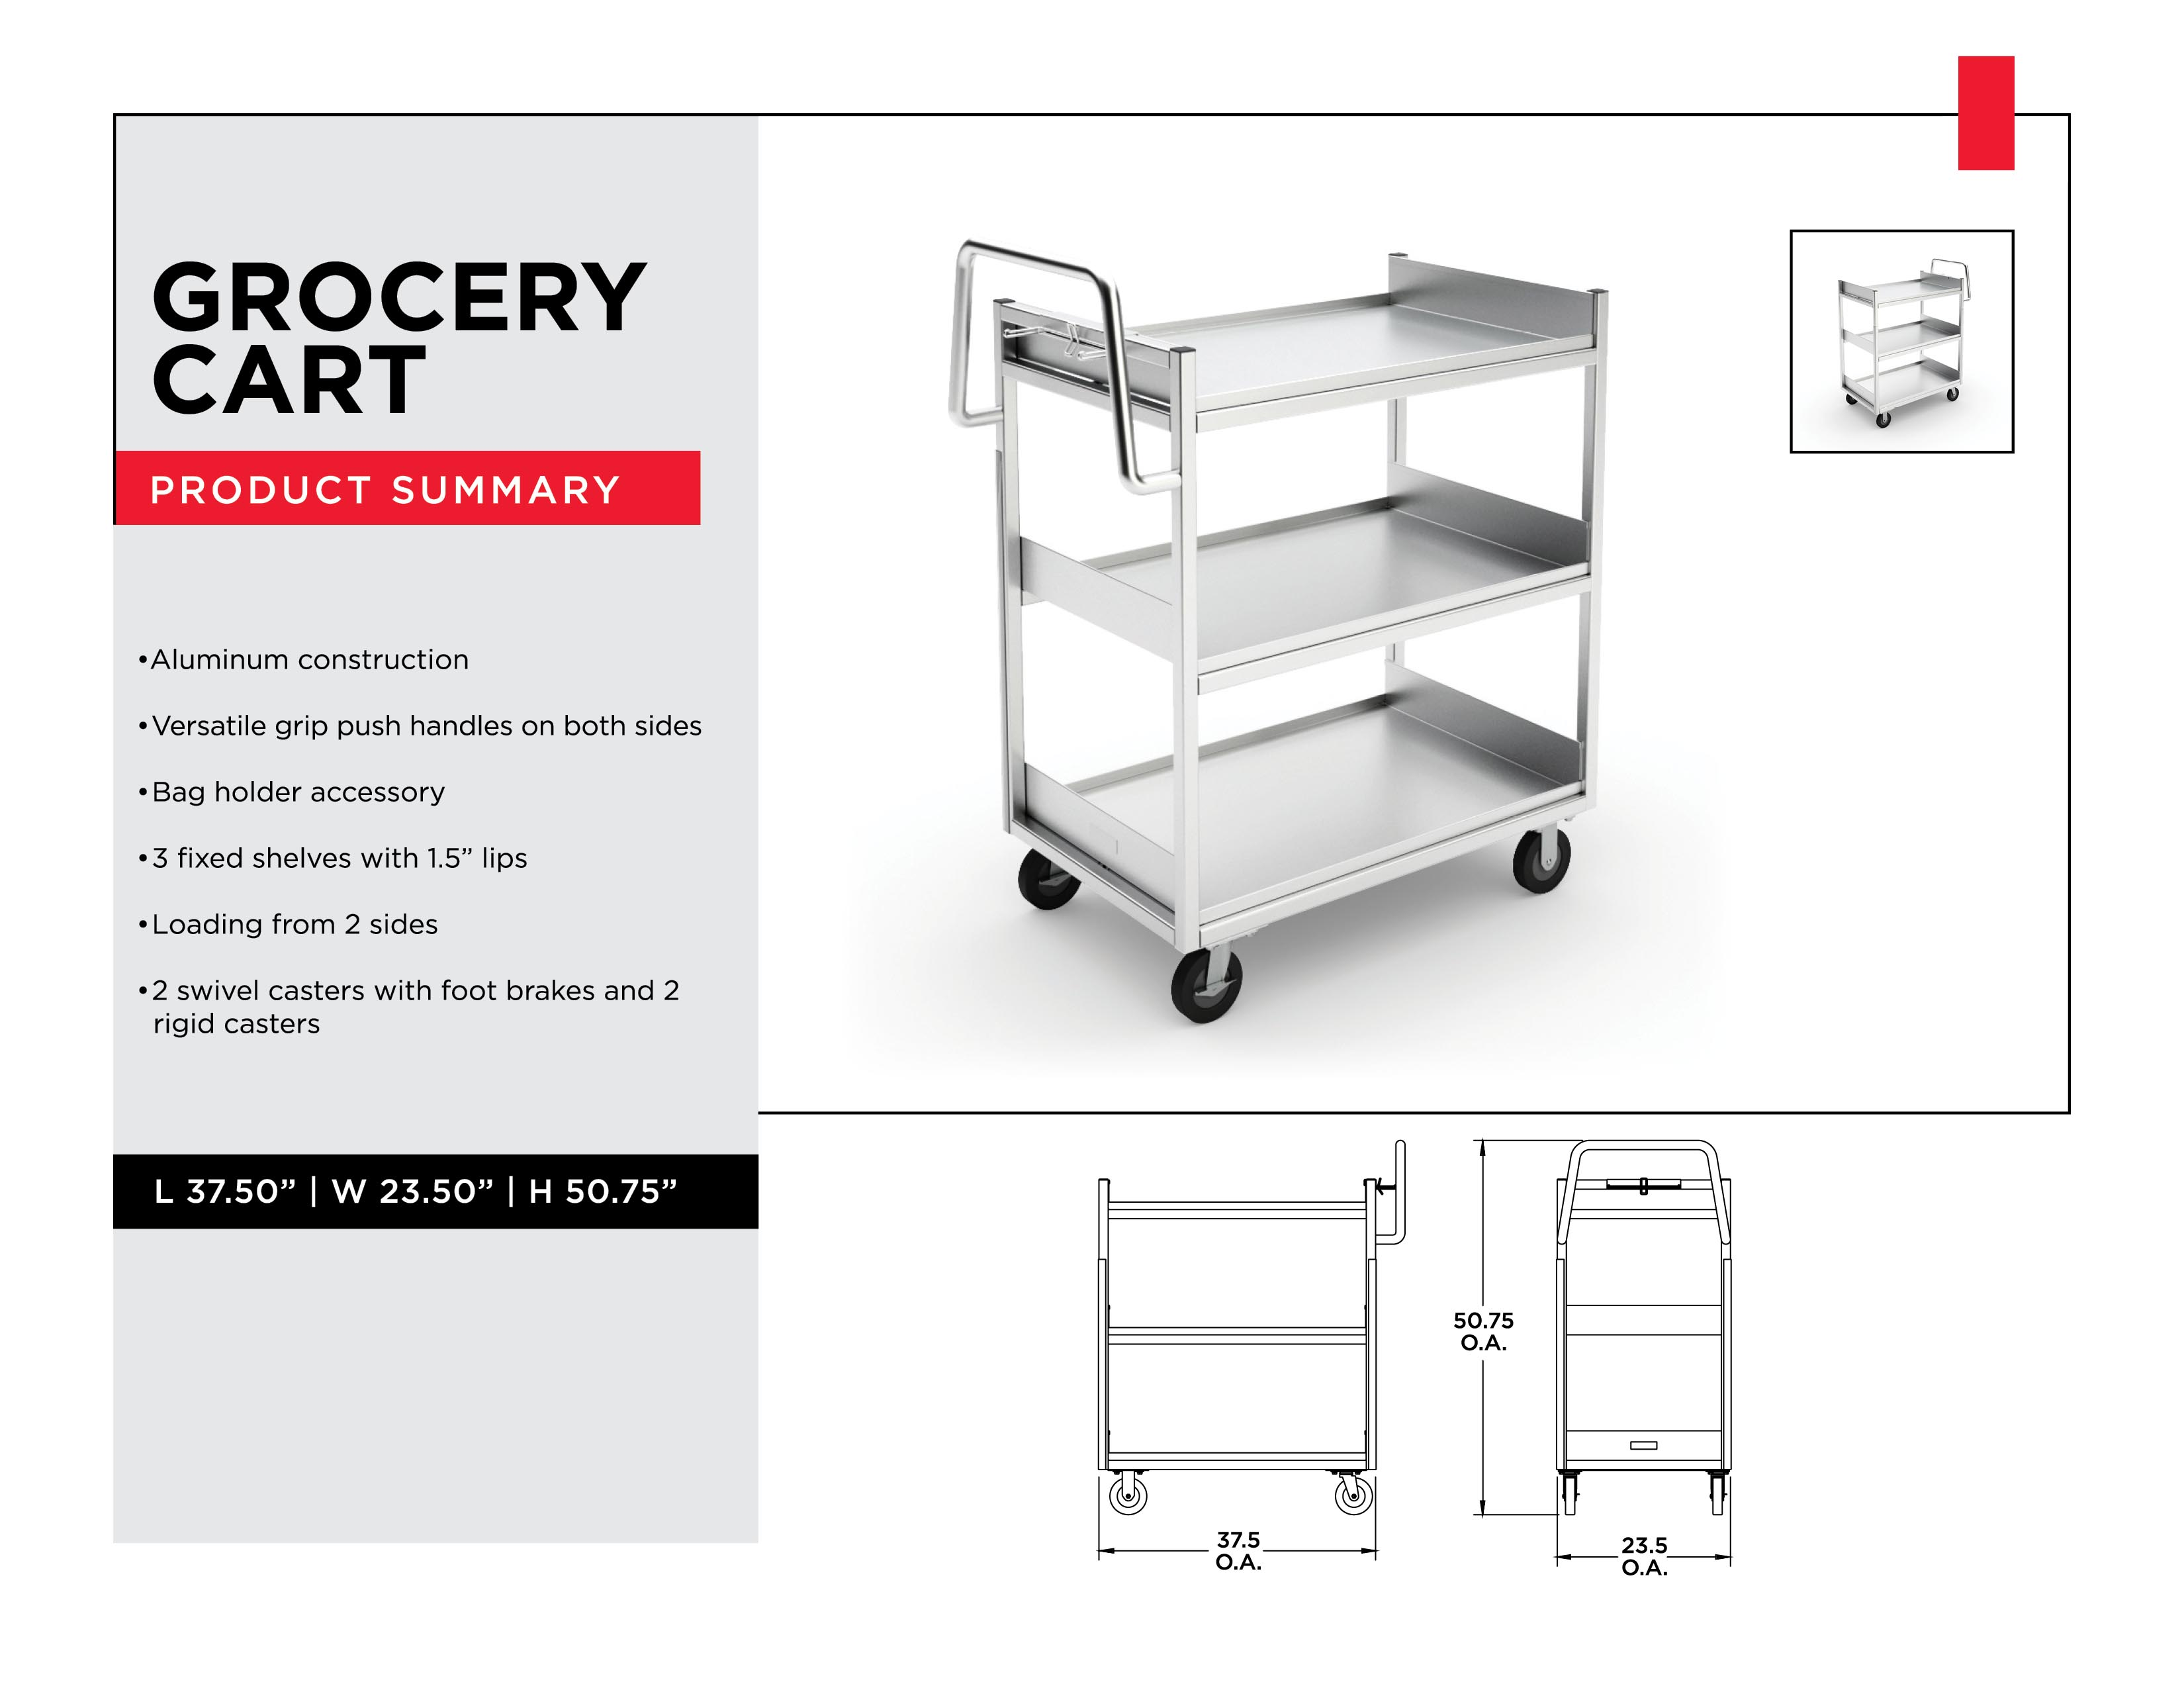 Retail Inventory Management: Grocery Cart